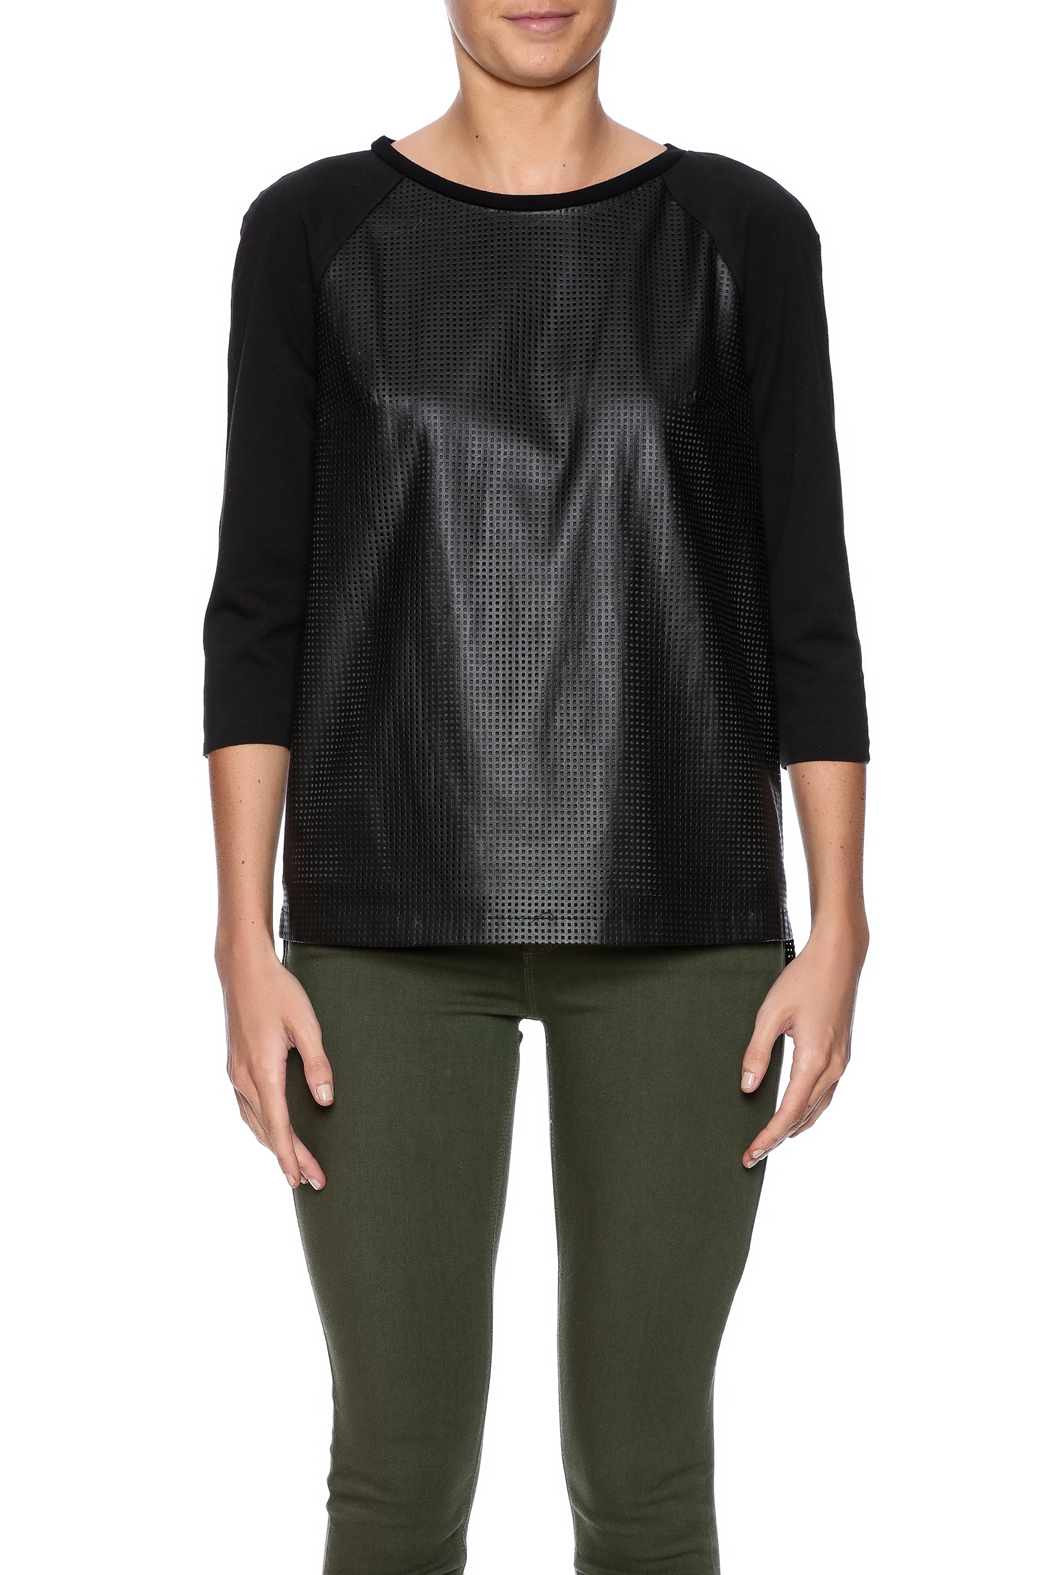 Tahari Laser Cut Top - Side Cropped Image